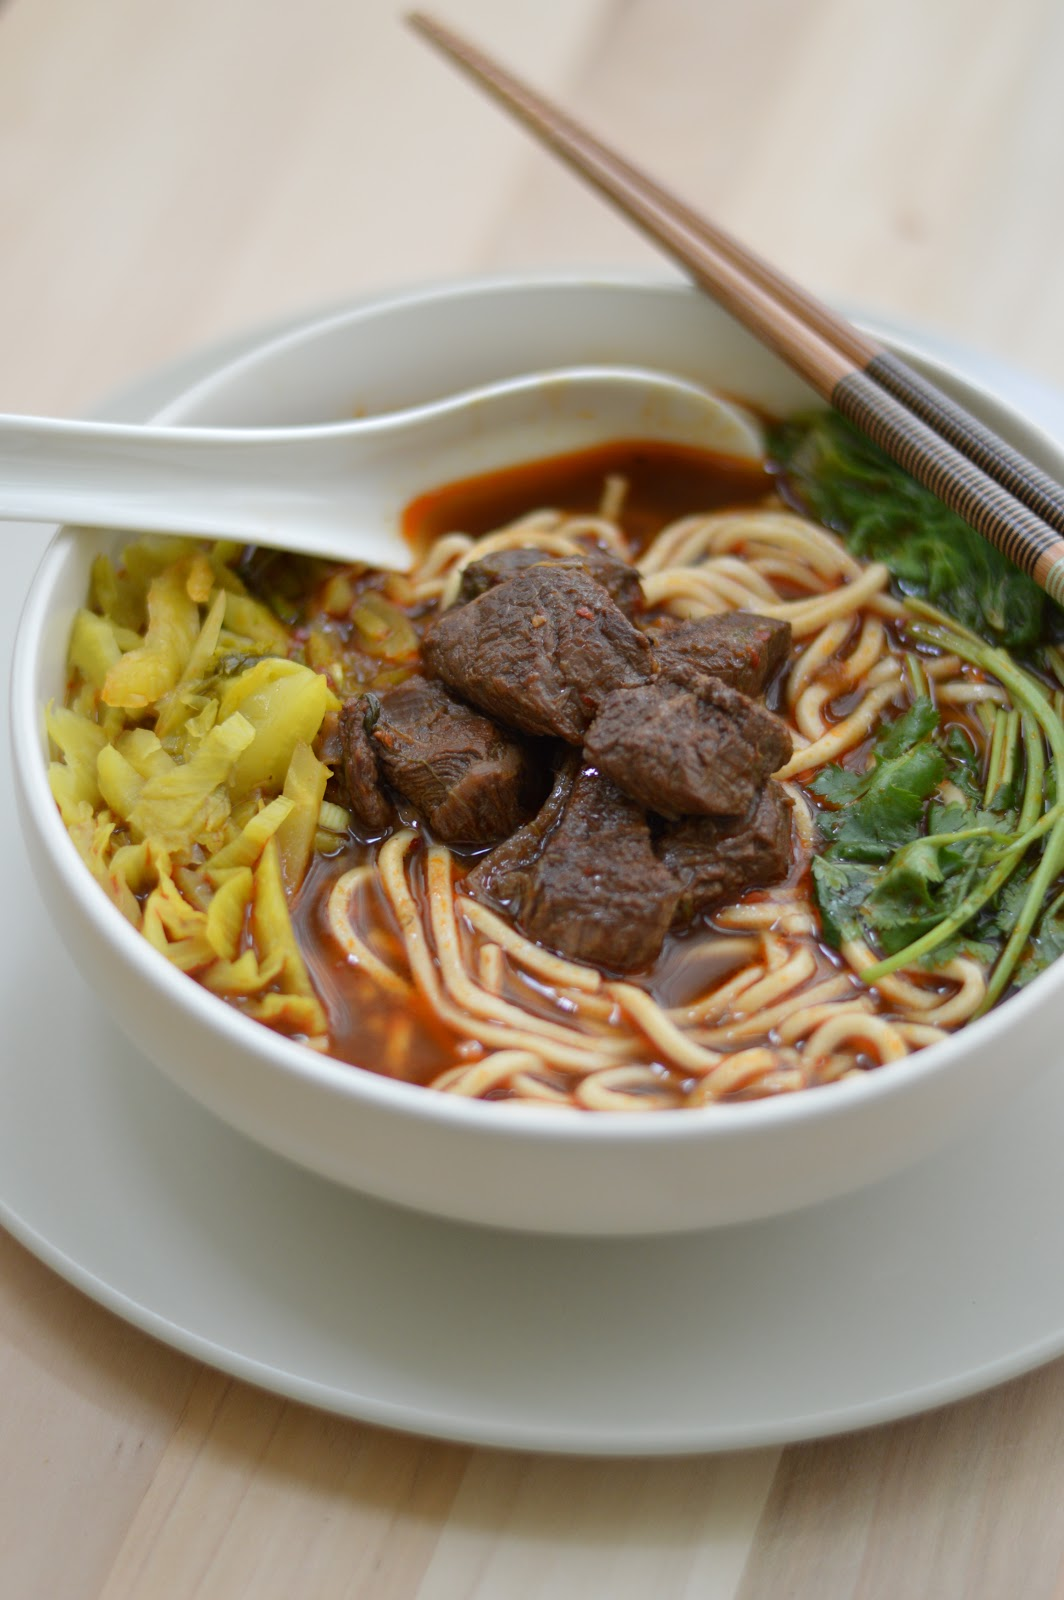 ... noodle salad taiwanese beef noodle soup at yong kang beef noodle soup